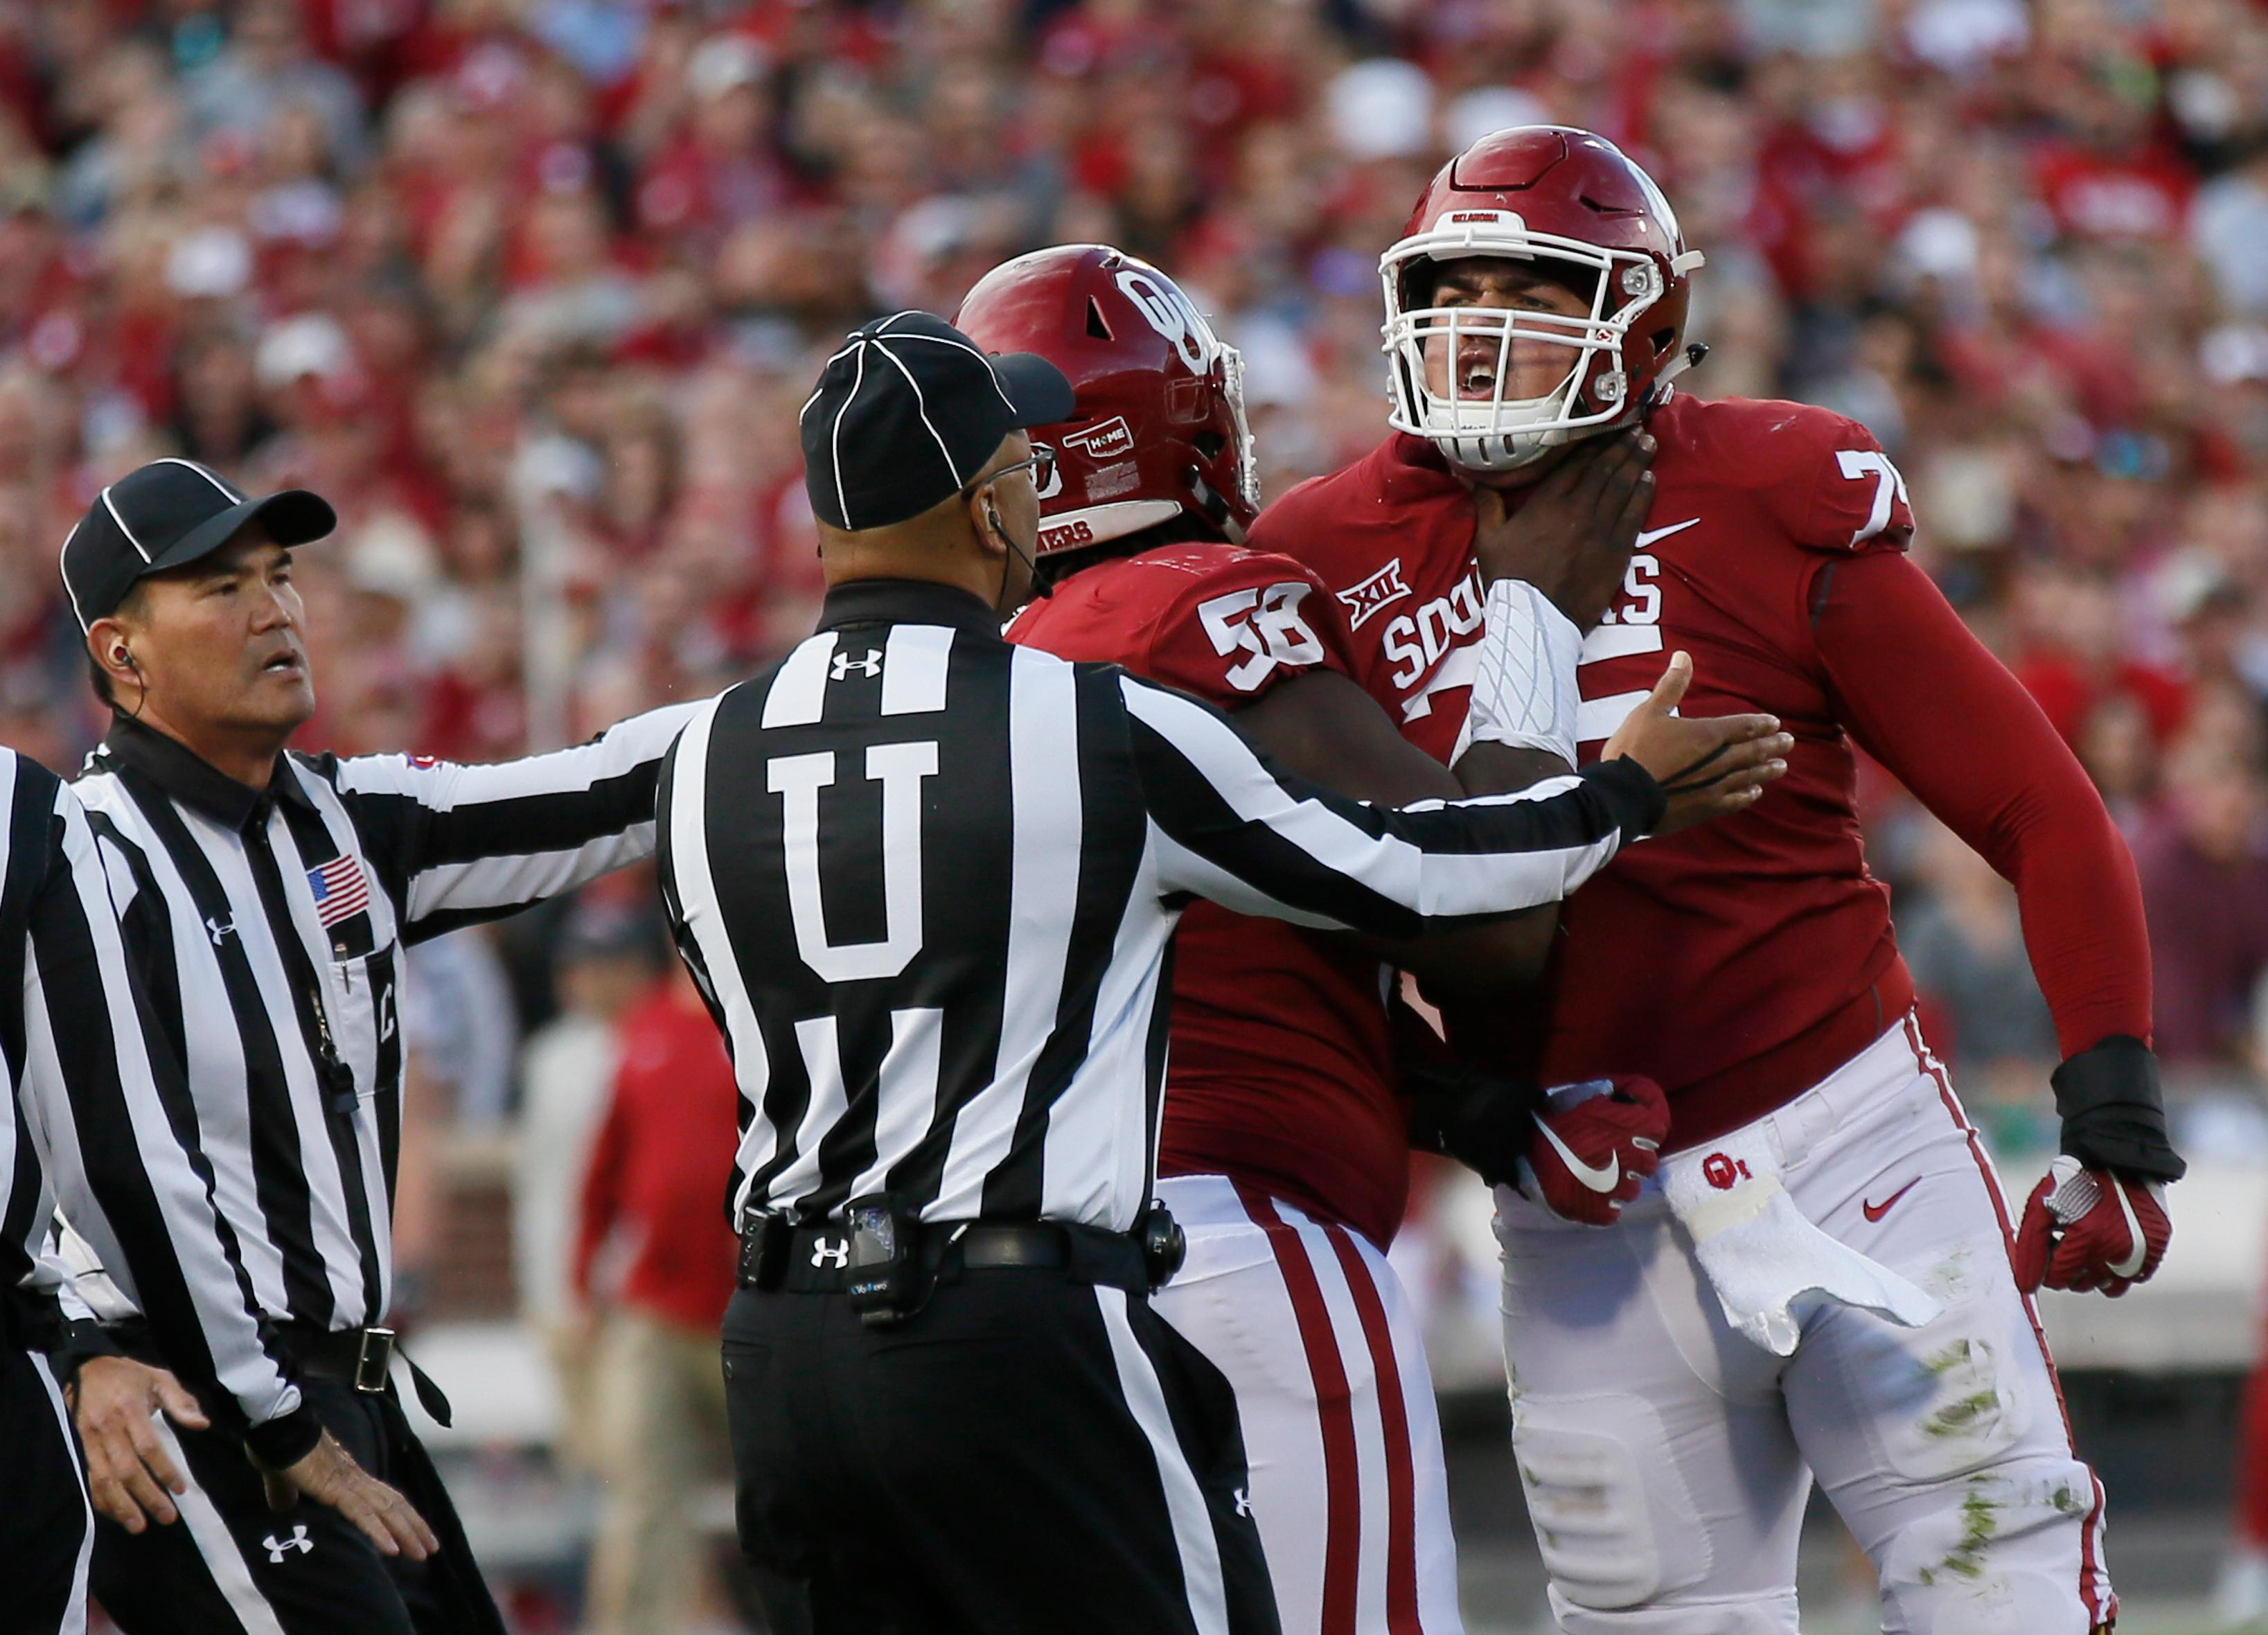 Oklahoma lineman Dru Samia (75) is held back by teammate Erick Wren (58) and officials in the second quarter of an NCAA college football game against West Virginia in Norman, Okla., Saturday, Nov. 25, 2017. Samia received a penalty and was ejected from the game. (AP Photo/Sue Ogrocki)